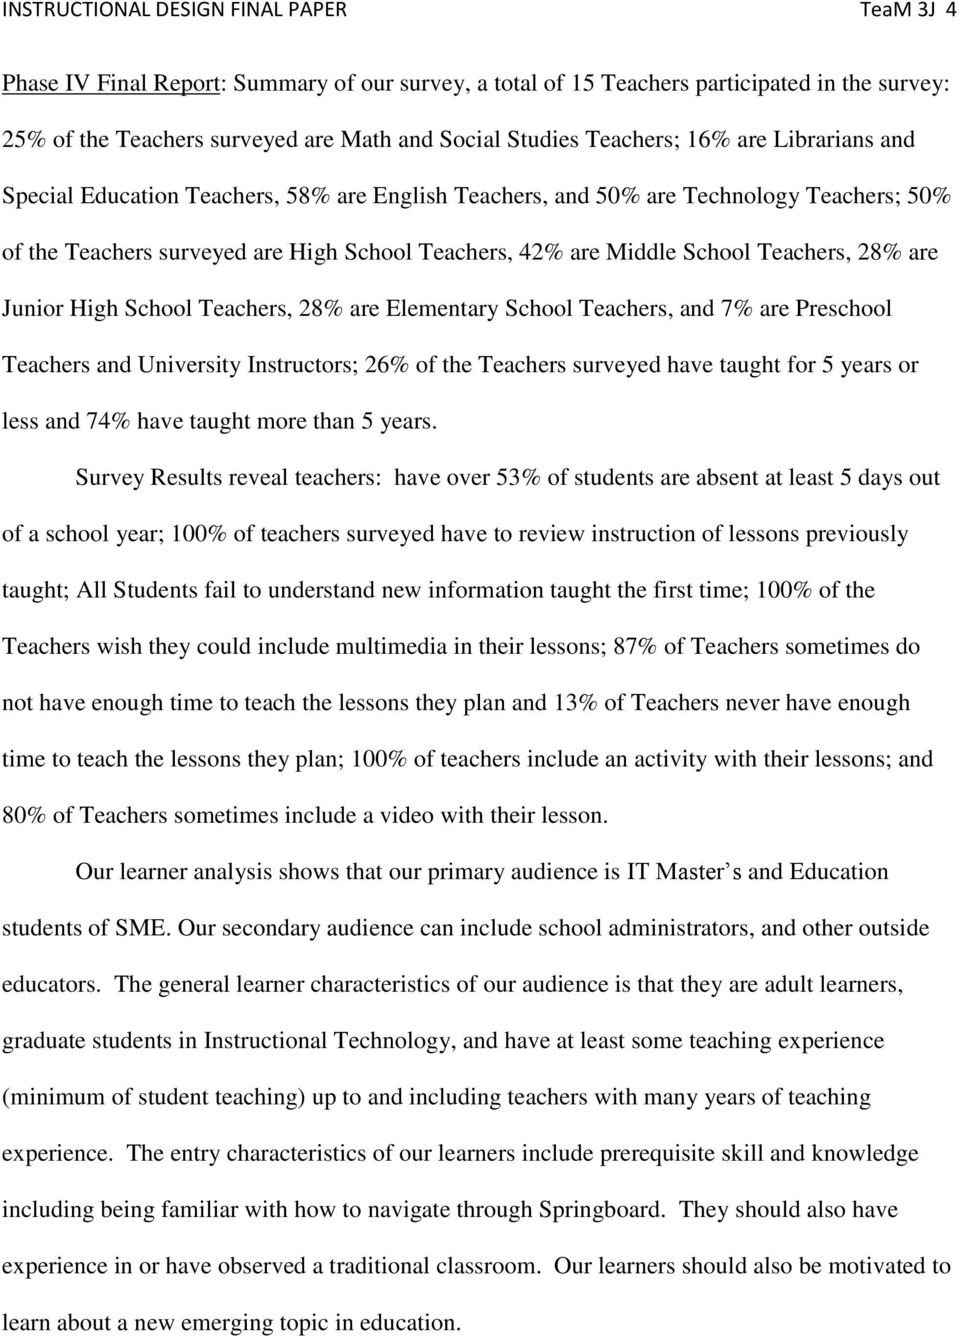 Teachers, 28% are Junior High School Teachers, 28% are Elementary School Teachers, and 7% are Preschool Teachers and University Instructors; 26% of the Teachers surveyed have taught for 5 years or